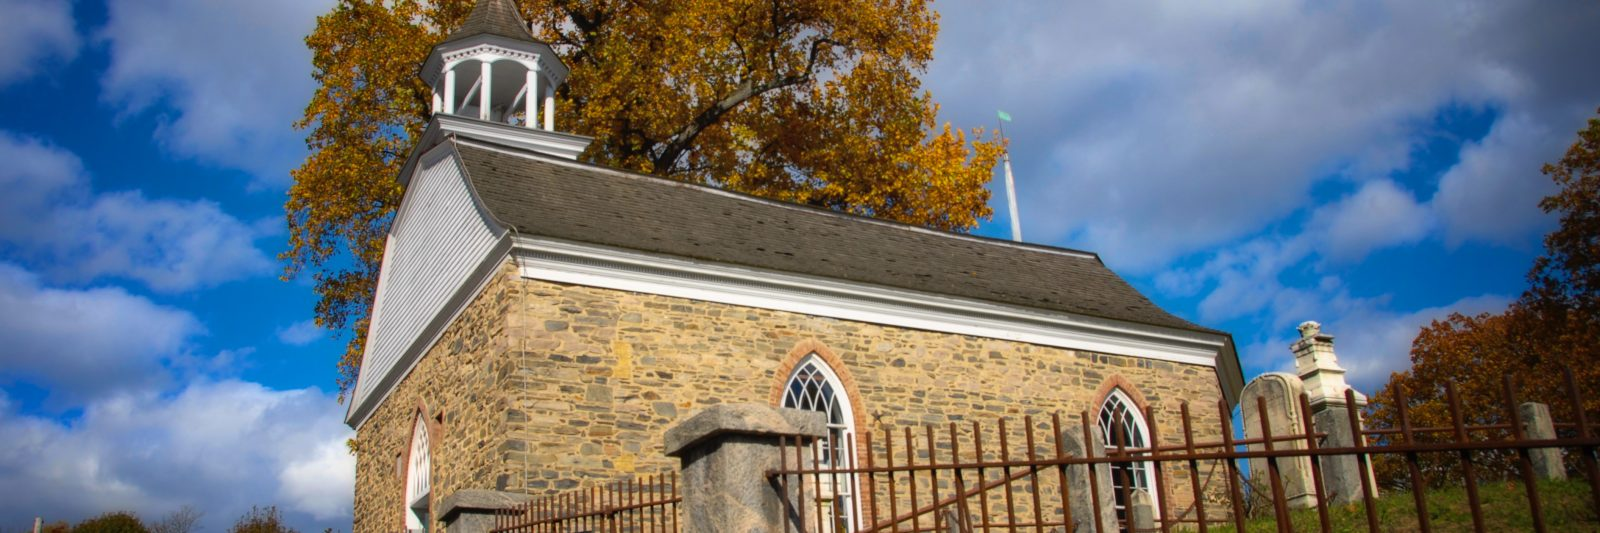 Sleepy Hollow's Old Dutch Church stands against a blue sky and dramatic clouds.